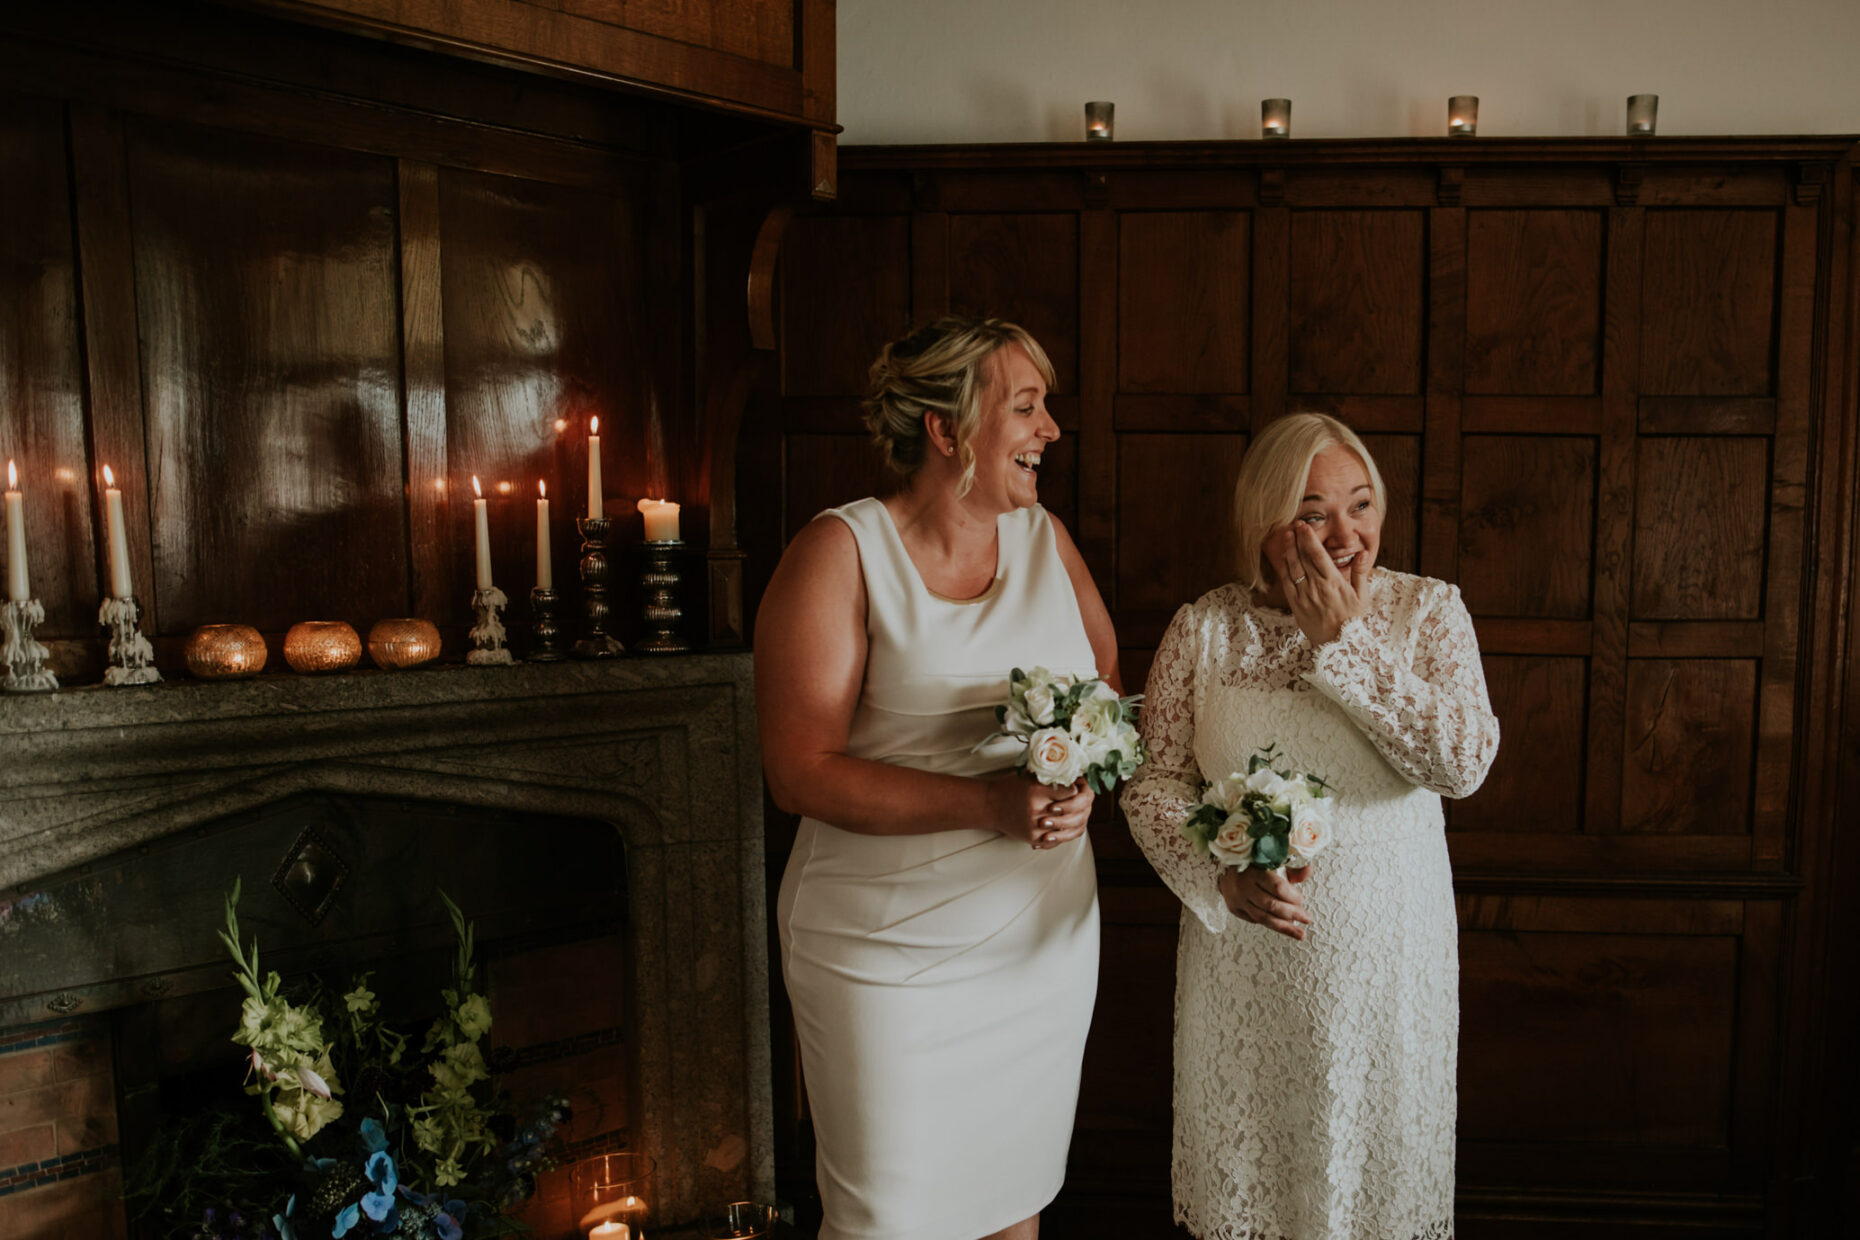 two brides stand close to each other during their ceremony and one bride is wiping away a tear from her cheek